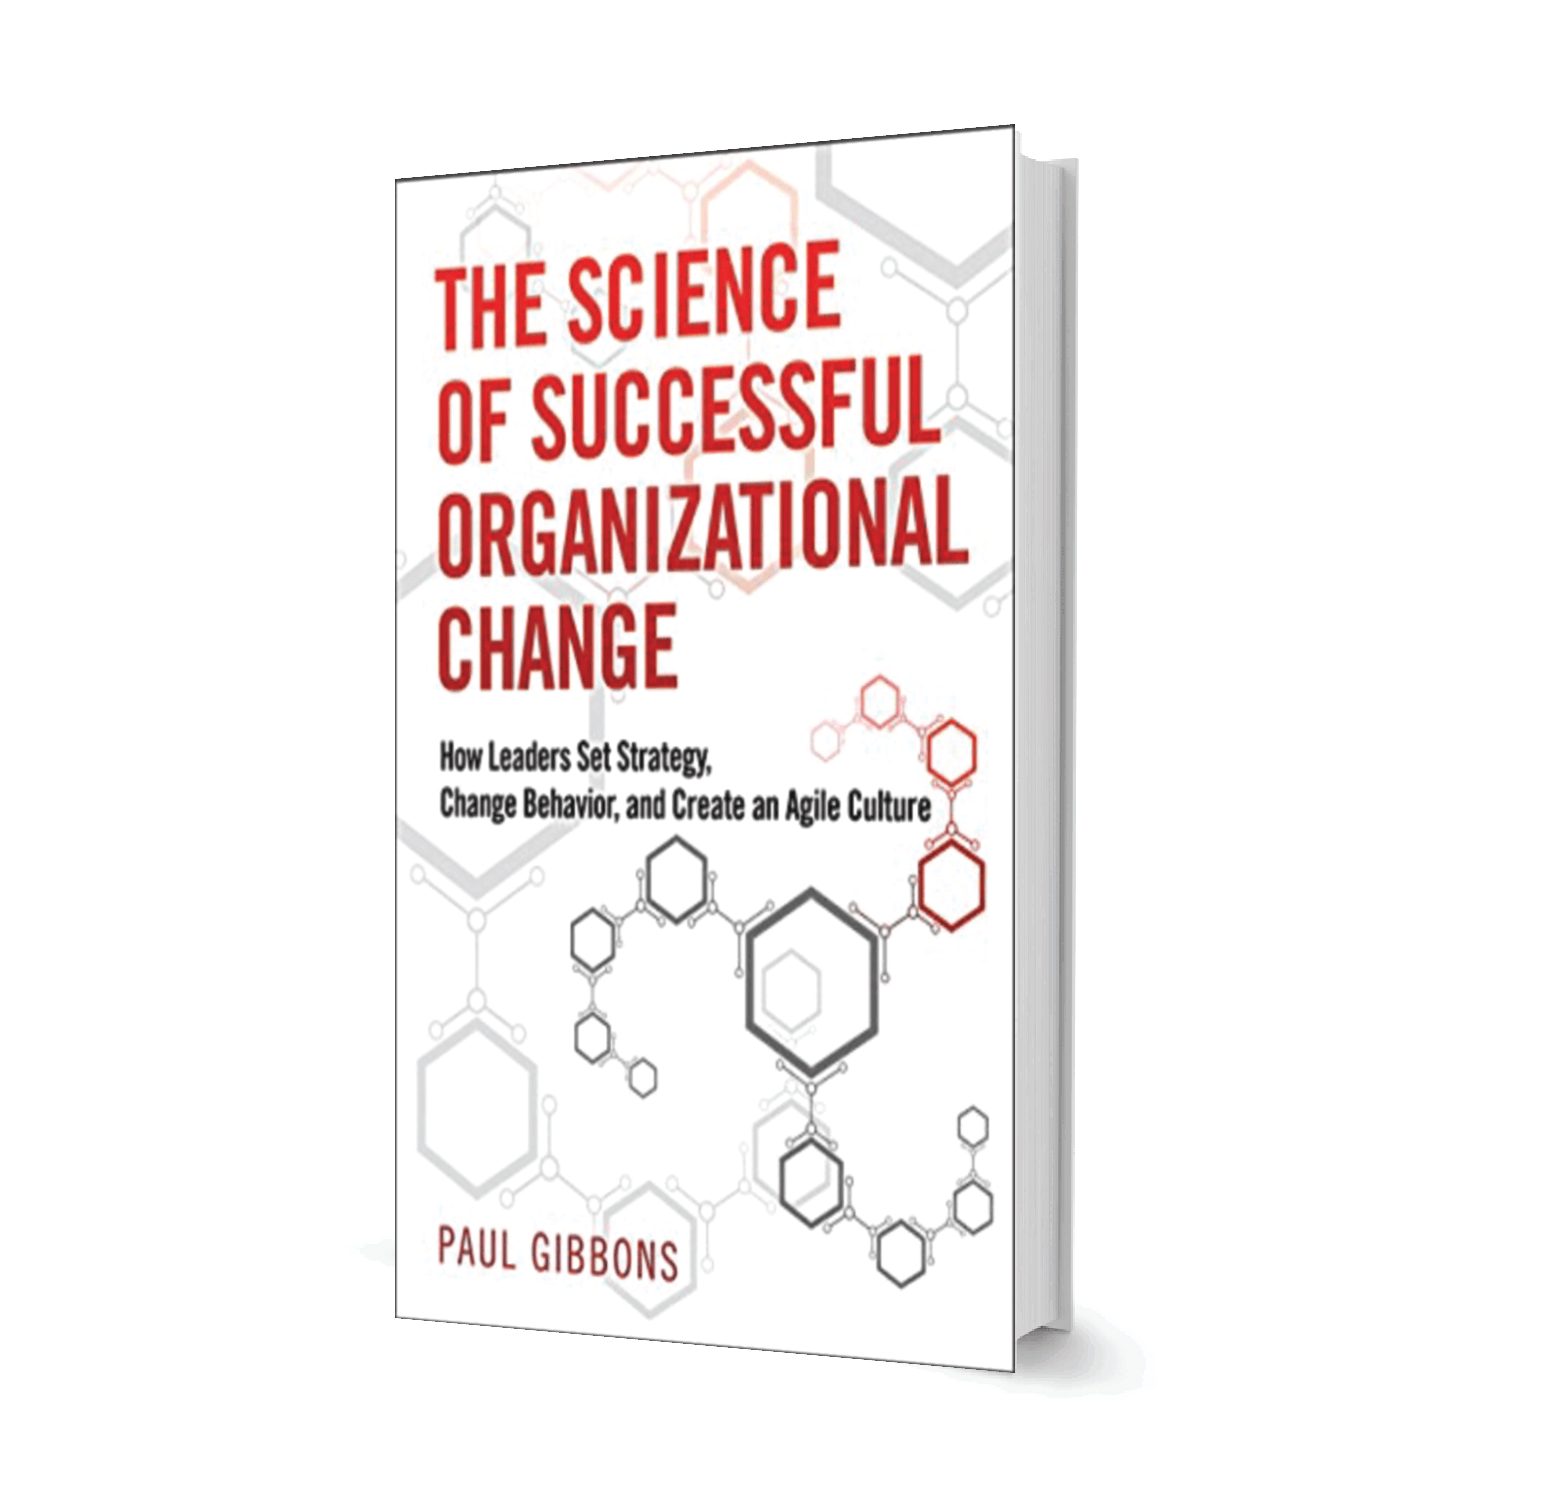 Science of Organizational Change